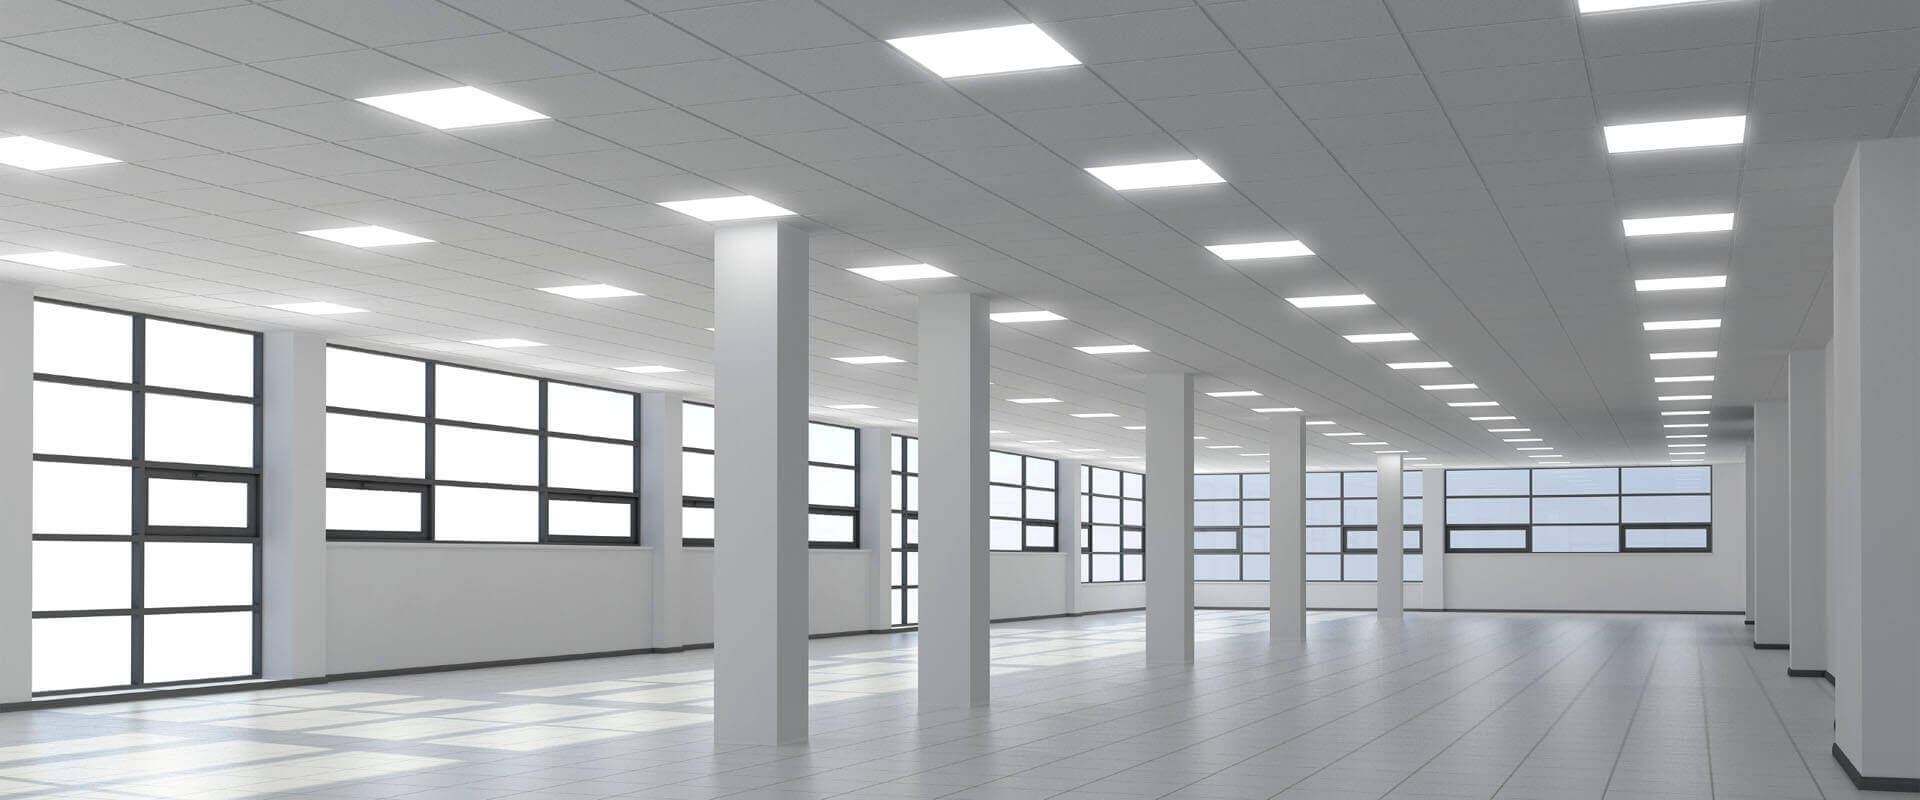 LED lighting services in Romford